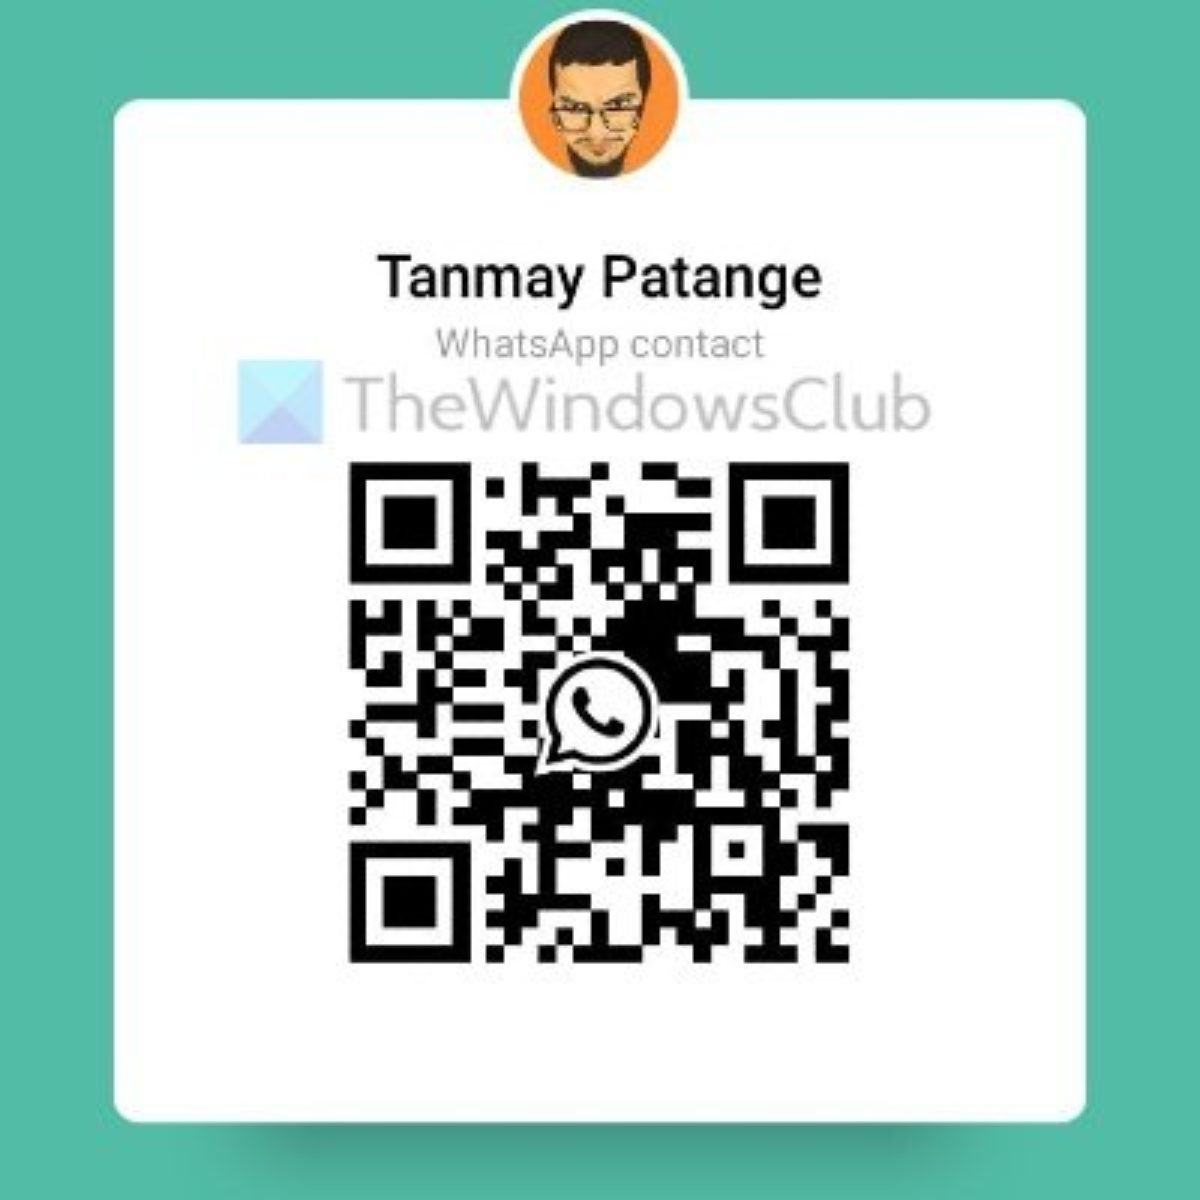 Whatsapp Qr Code Option Allows Users To Easily Scan And Add Contacts